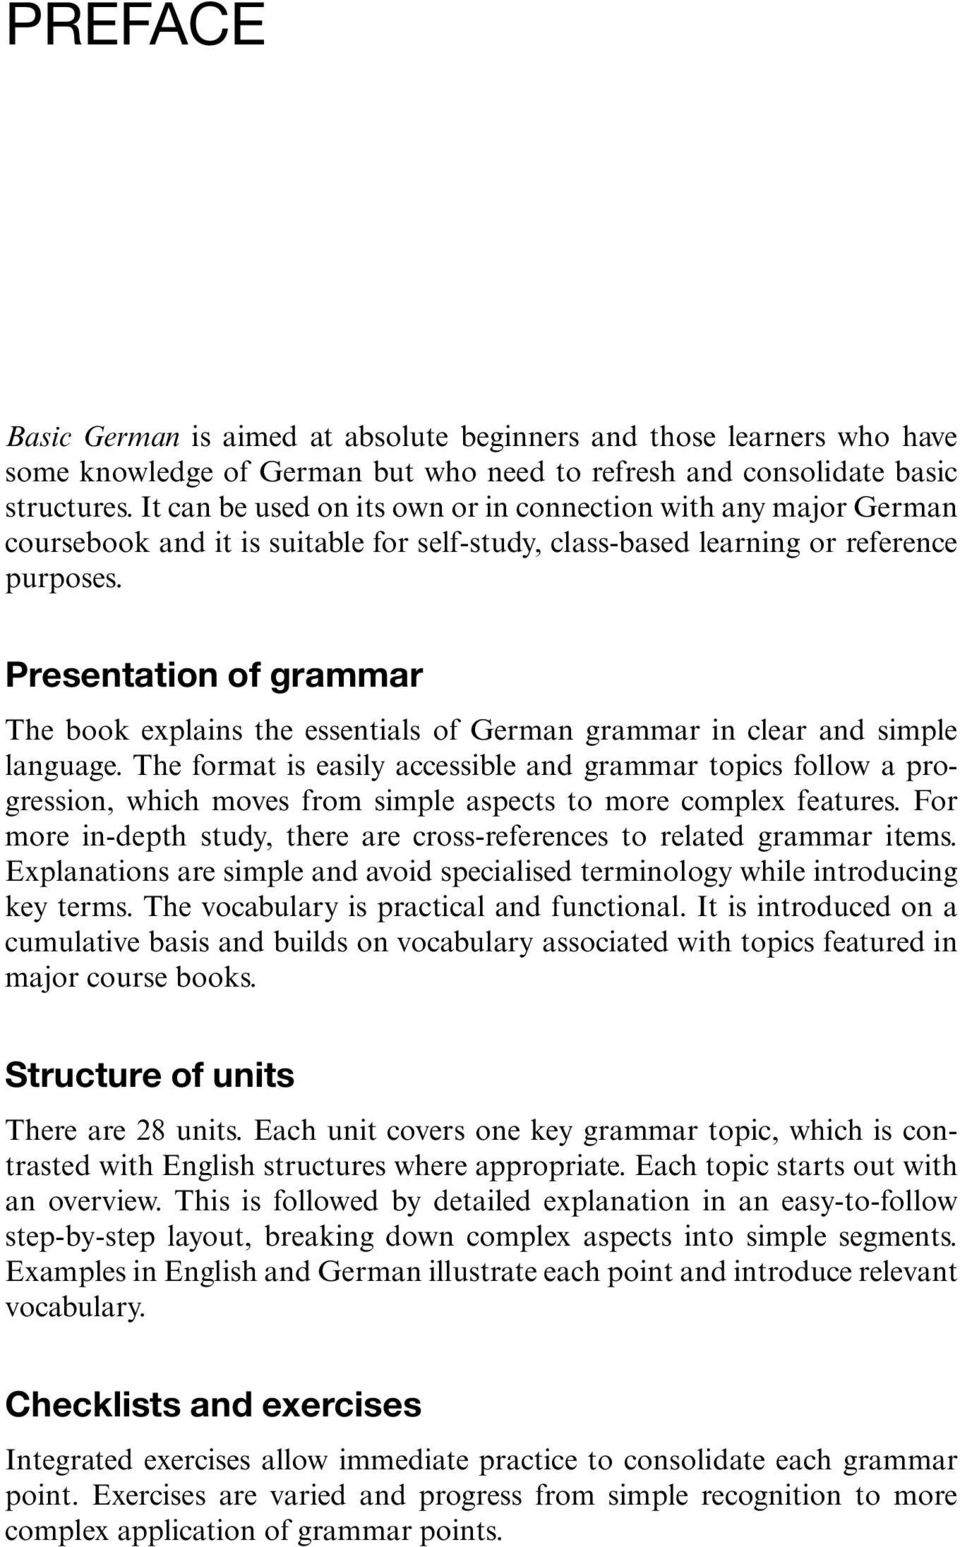 Basic german a grammar and workbook pdf presentation of grammar the book explains the essentials of german grammar in clear and simple language kristyandbryce Gallery